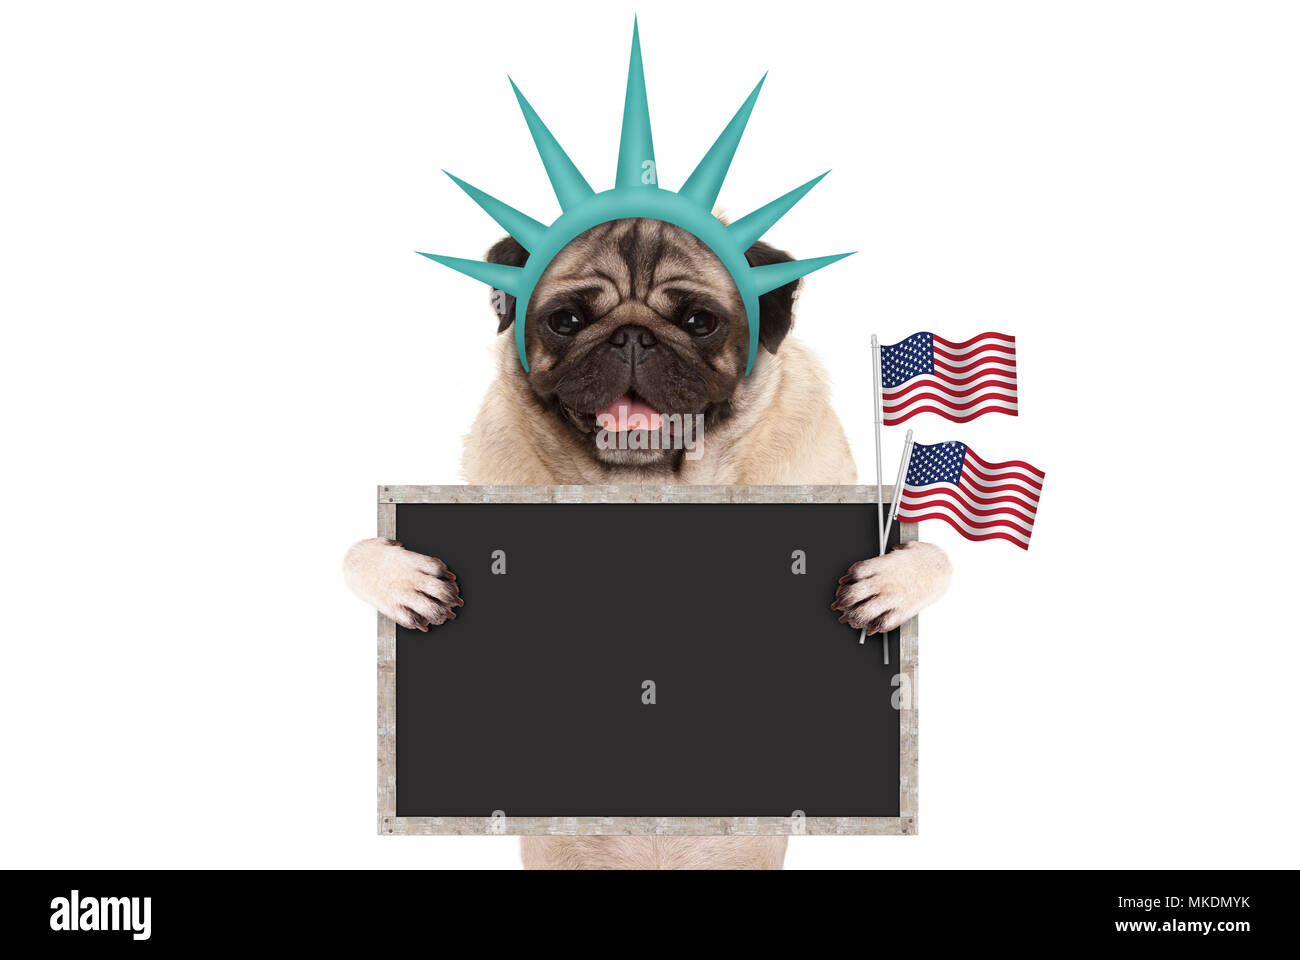 smiling pug puppy dog holding up American flag and blank blackboard sign, wearing lady Liberty crown, isolated on white Stock Photo